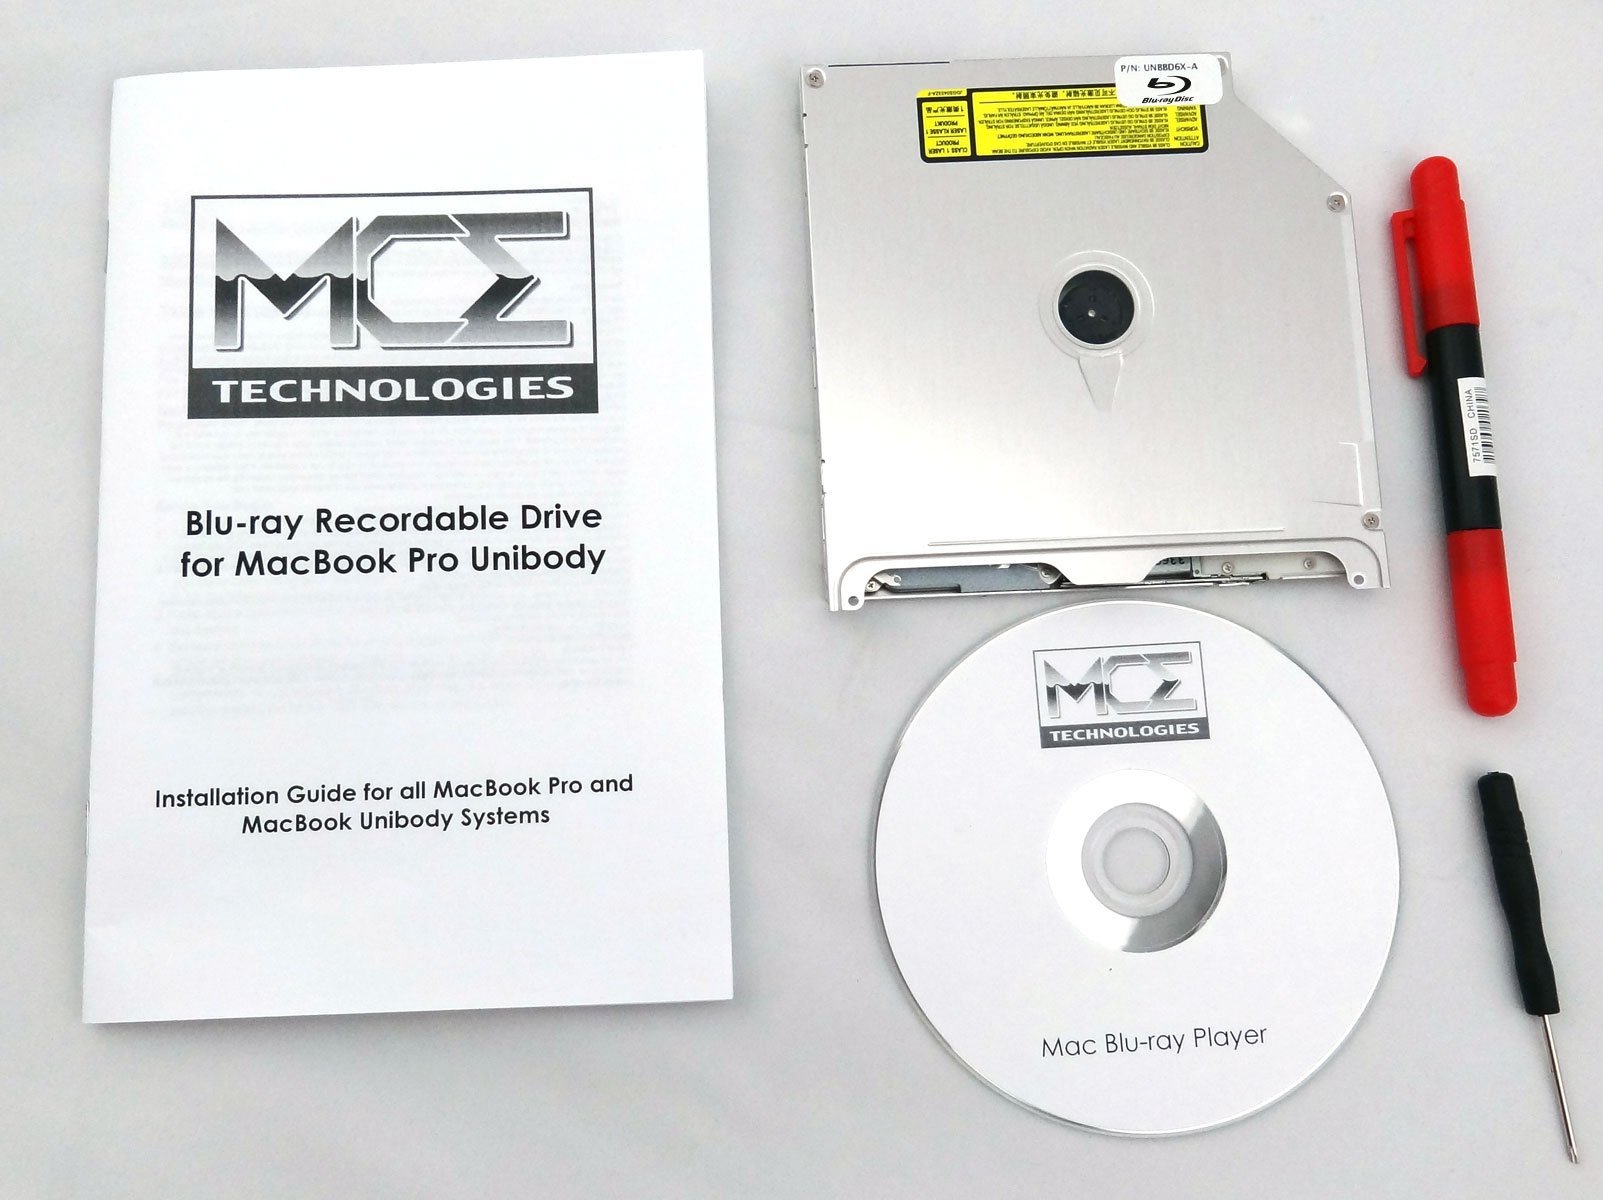 Internal Blu-ray Drive Burner Writer Player for Apple MacBook Pro 13'', 15'' and 17'' Unibody with Mac Blu-ray Player Software, Install Kit by MCE Technologies